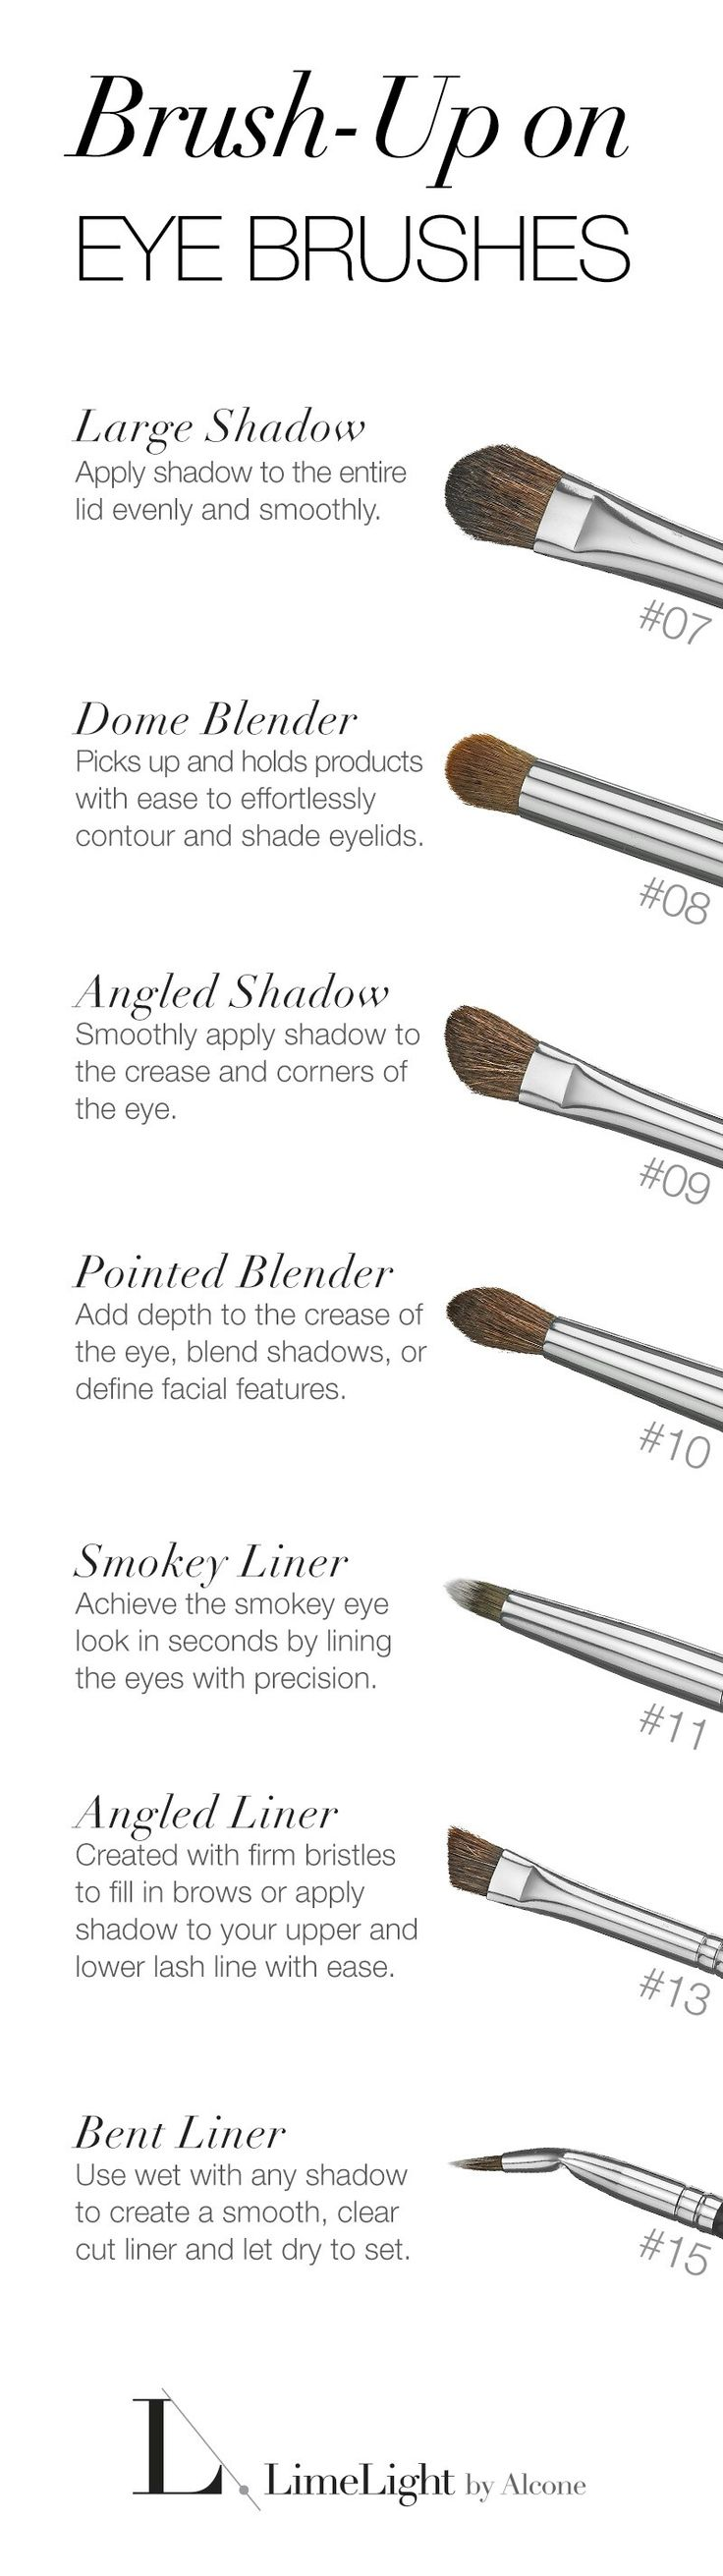 Using the right brushes will make a difference when applying eyeshadow. LIMELIGHT BY ALCONE - SIGNATURE VEGAN BRUSHES.